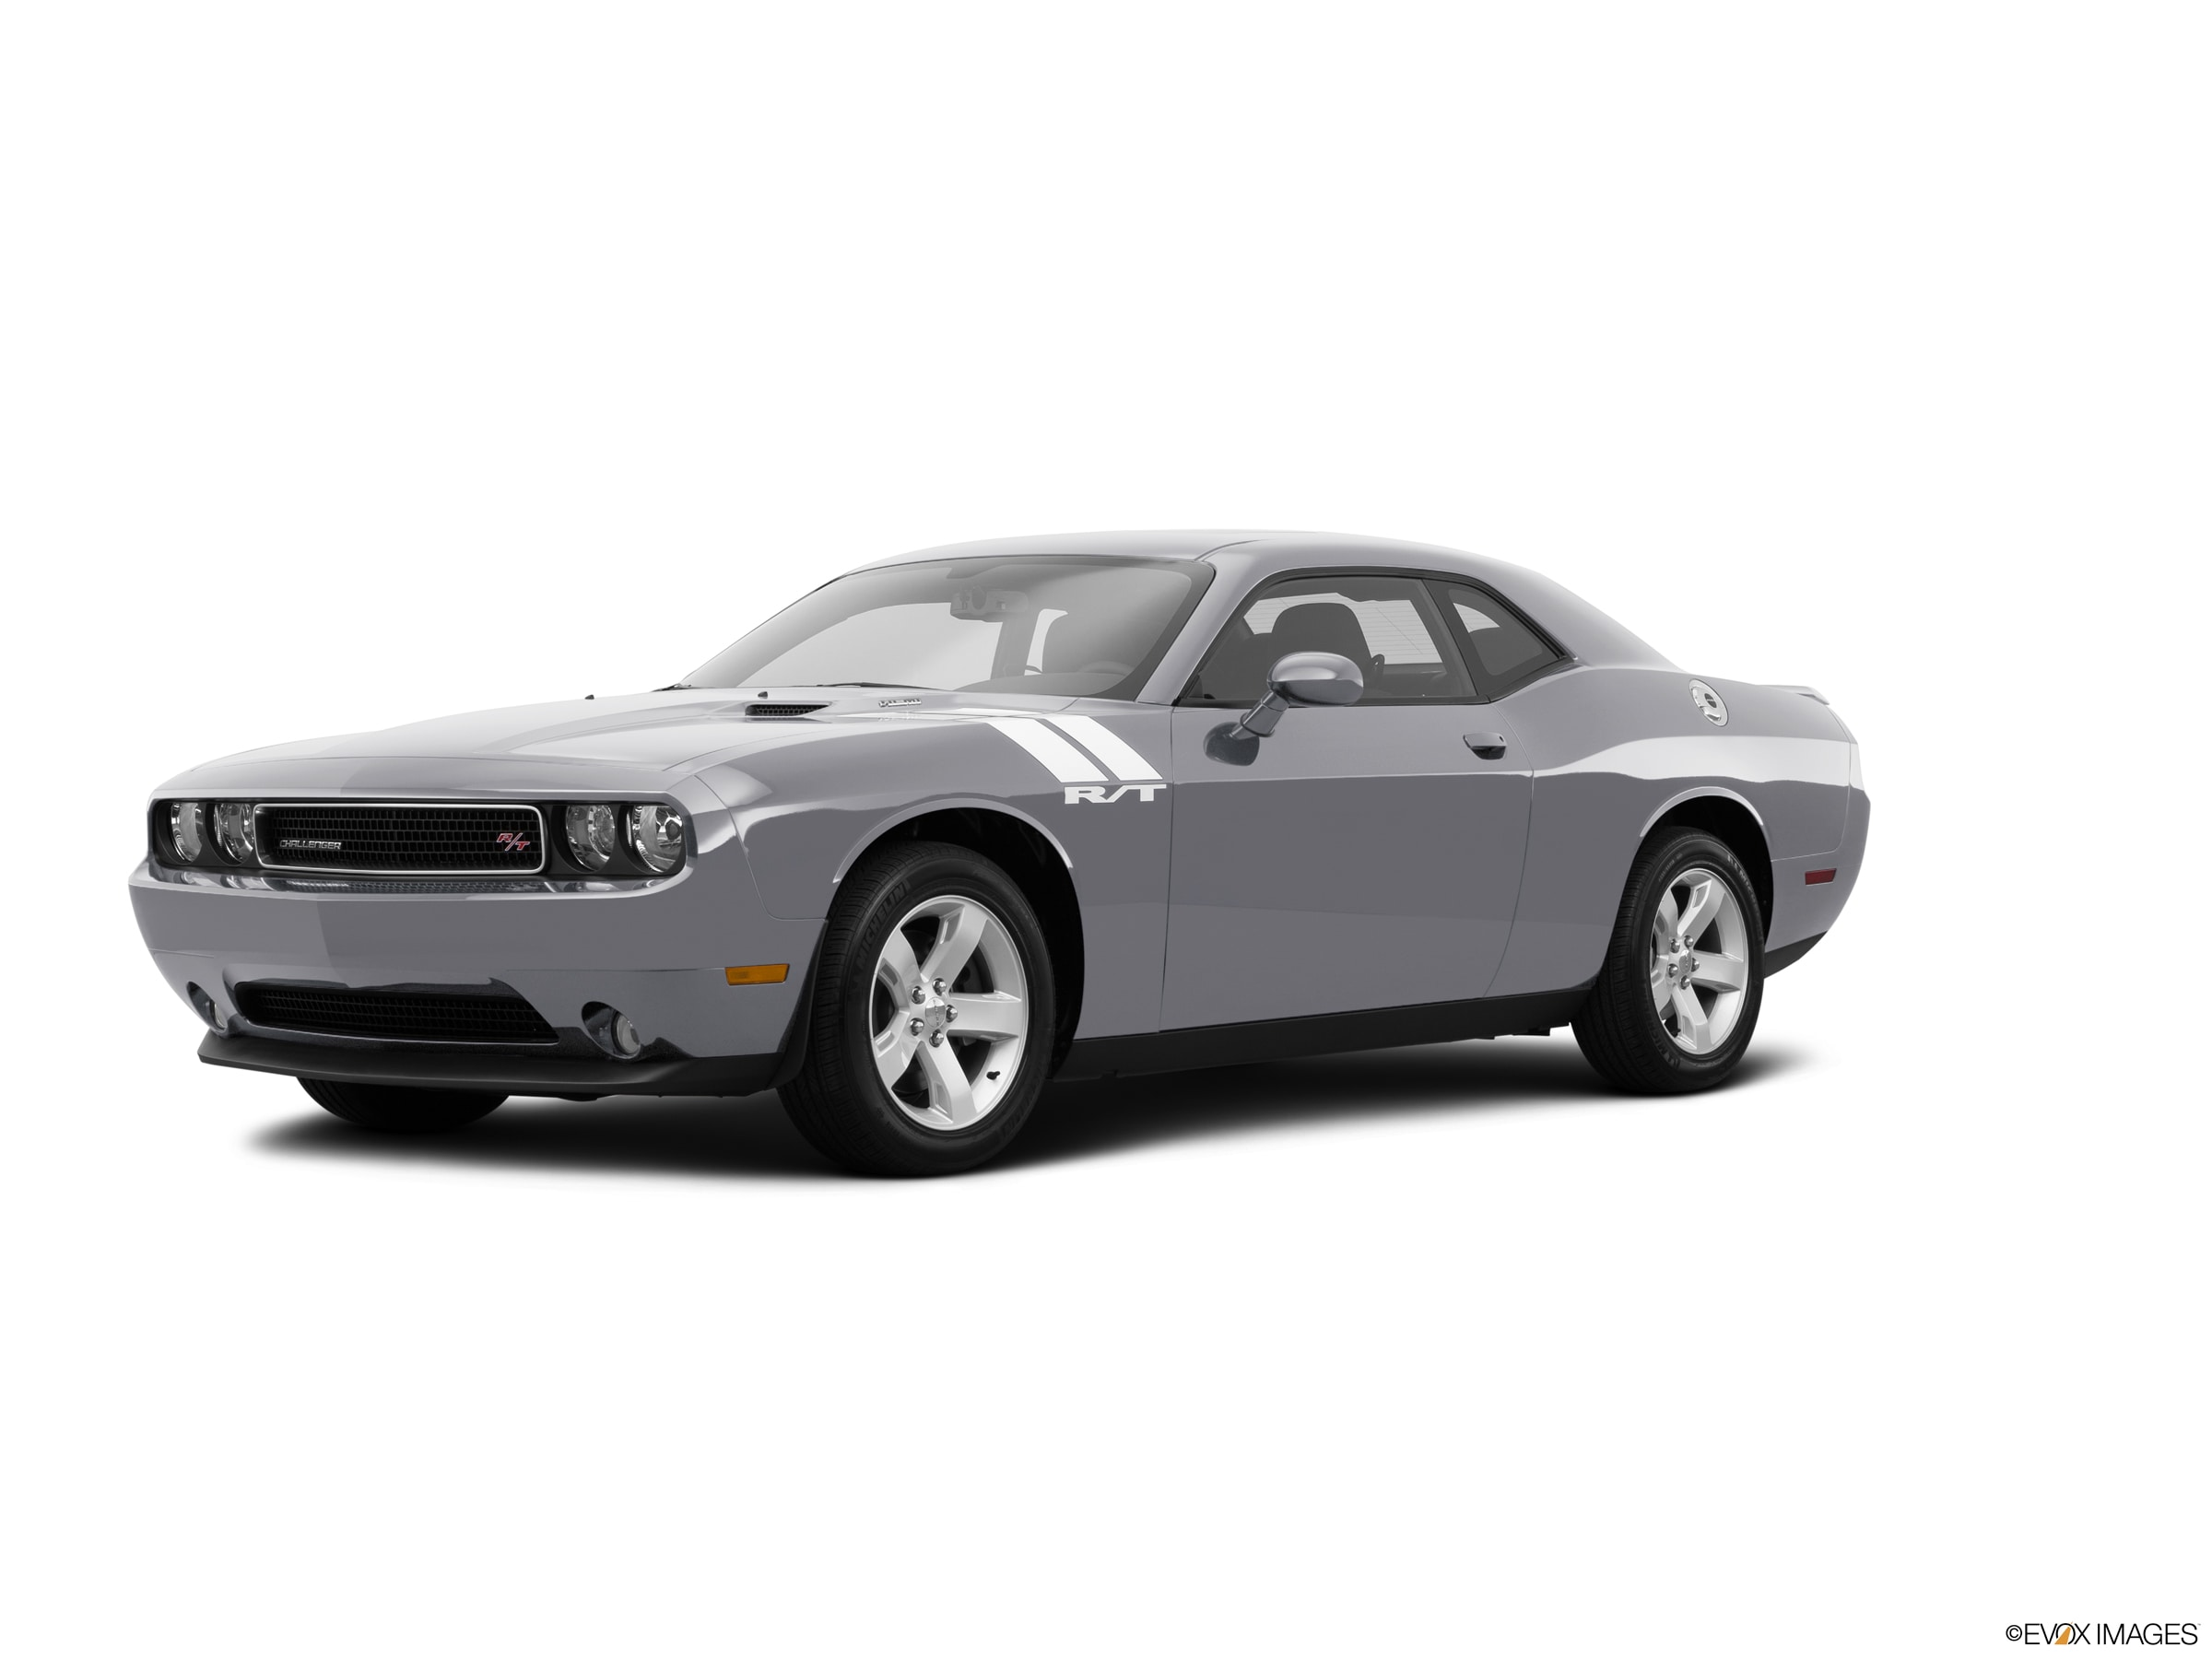 Used 2014 Dodge Challenger For Sale Gonzales La Vin 2c3cdycj6eh209853